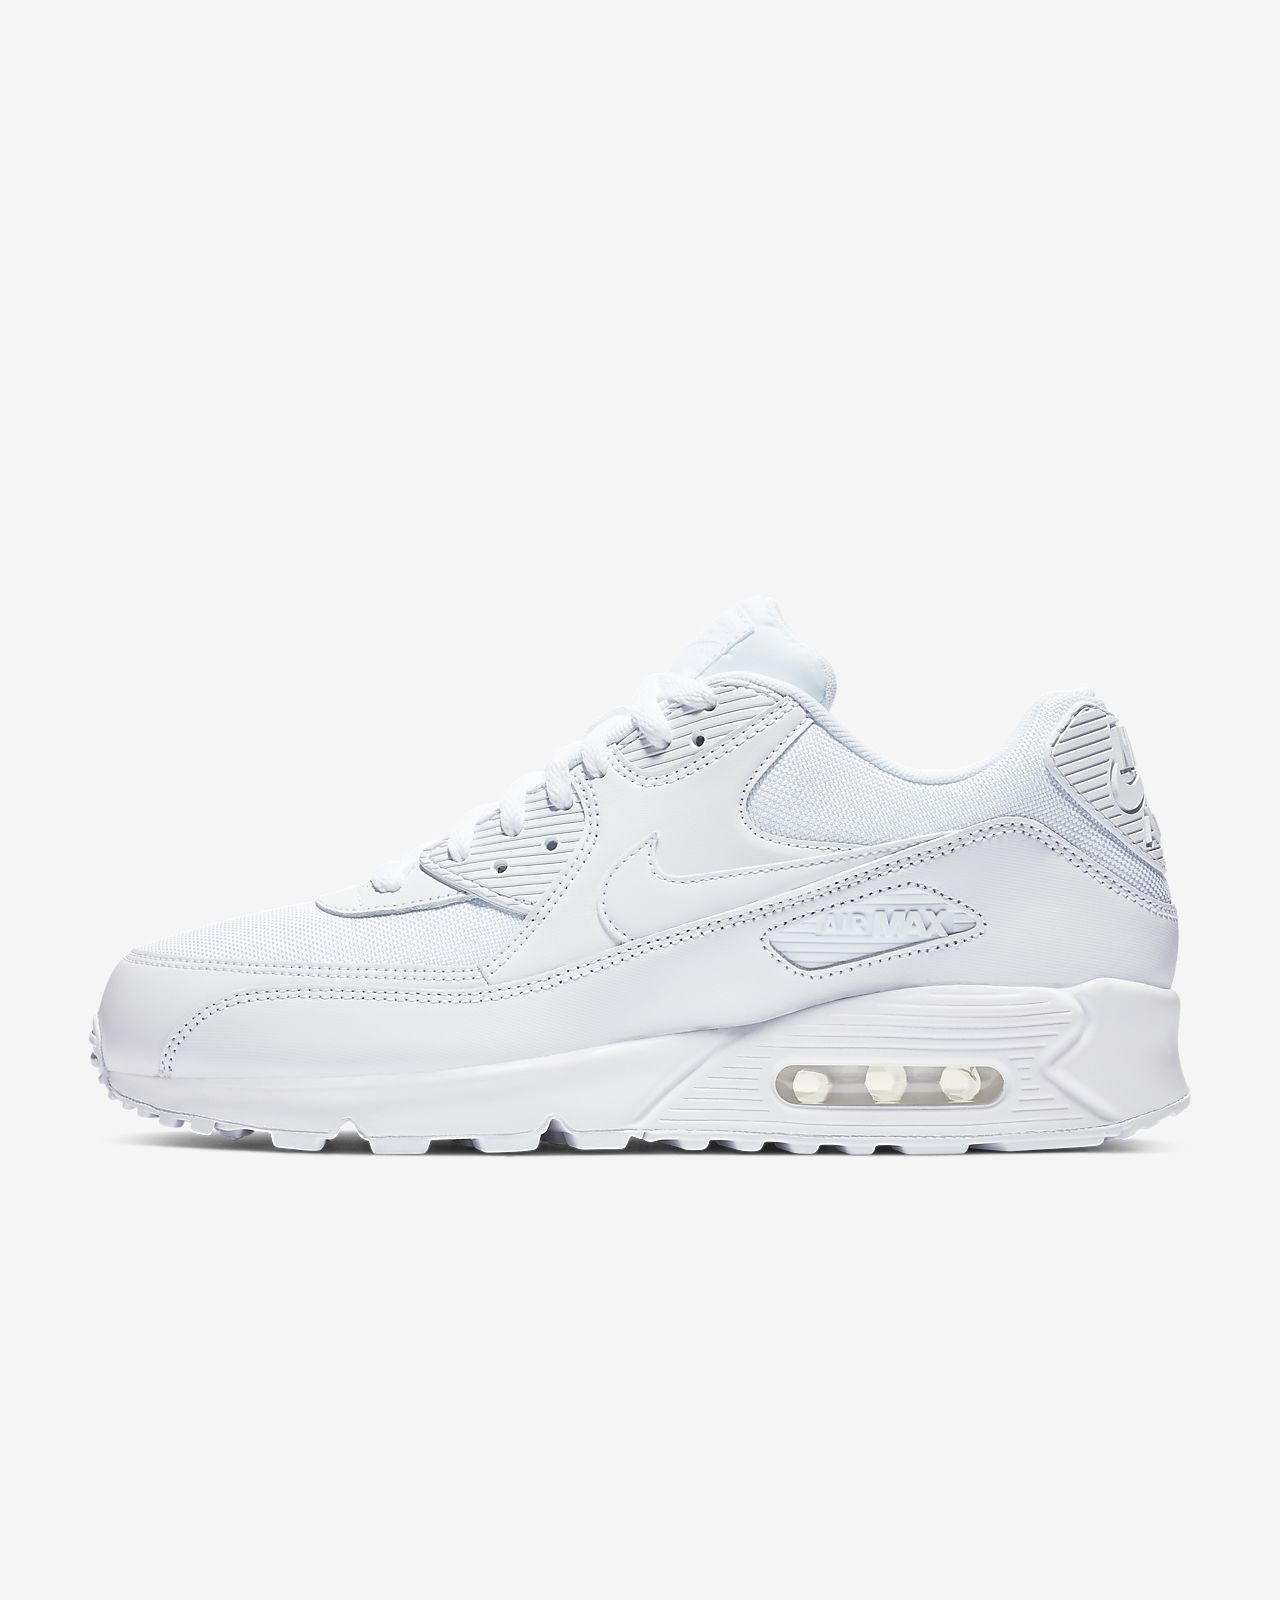 reputable site 39995 0fb2a Nike Air Max 90 Essential